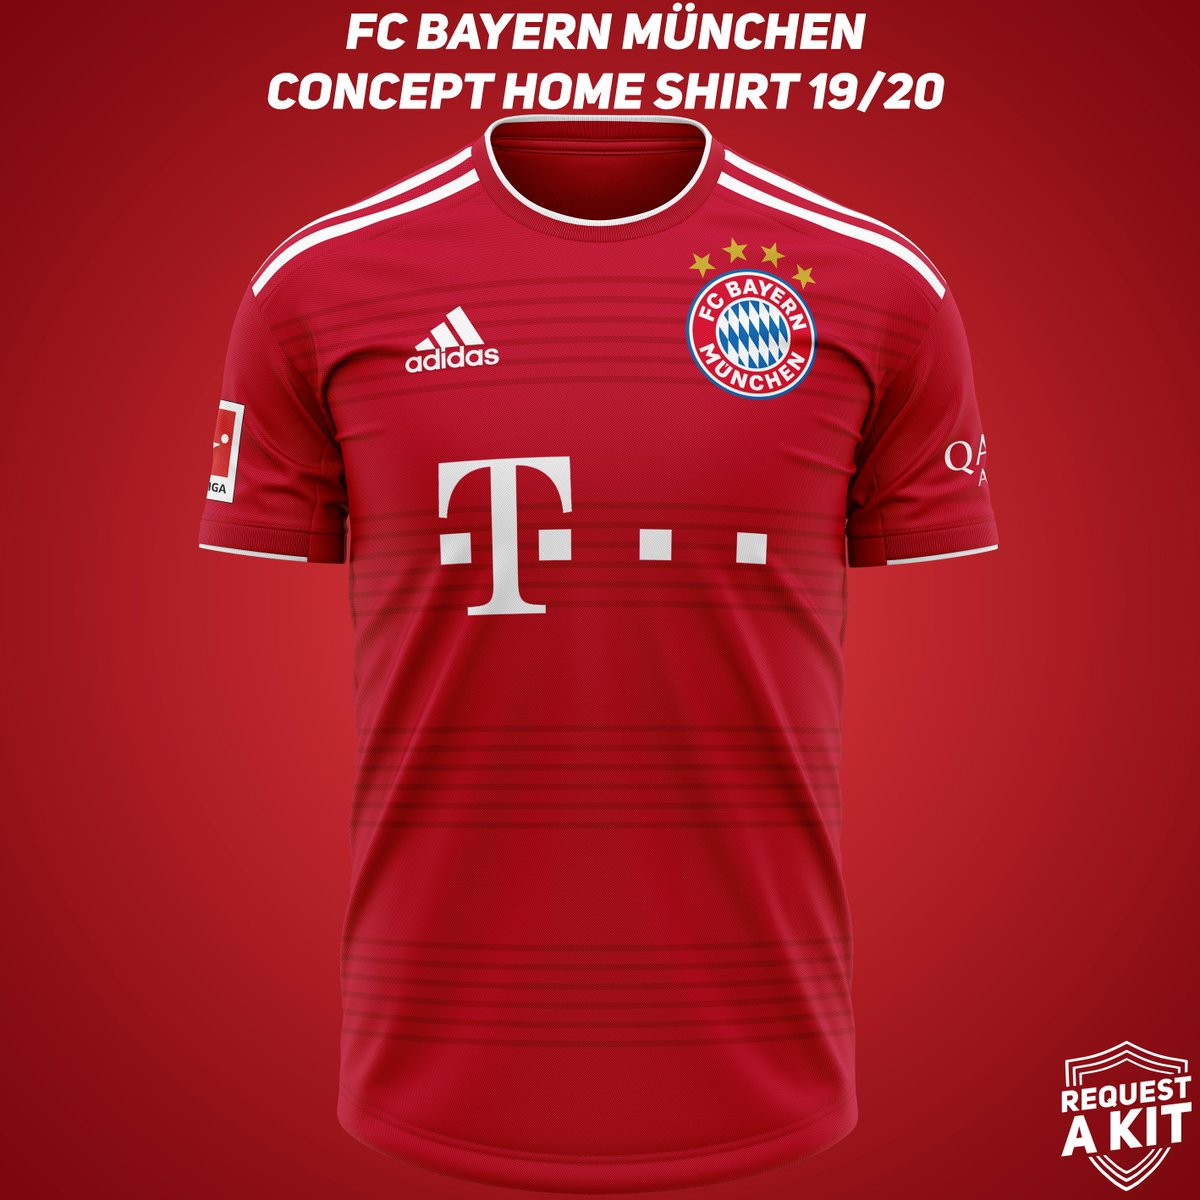 Request A Kit On Twitter Fc Bayern Munchen Concept Home Away And Third Shirts 2019 20 Requested By Haiqalbudrizaa Fcbayern Bayern Munich Fcb Miasanmia Sgefcb Fm20 Wearethecommunity Download For Your Football Manager Save